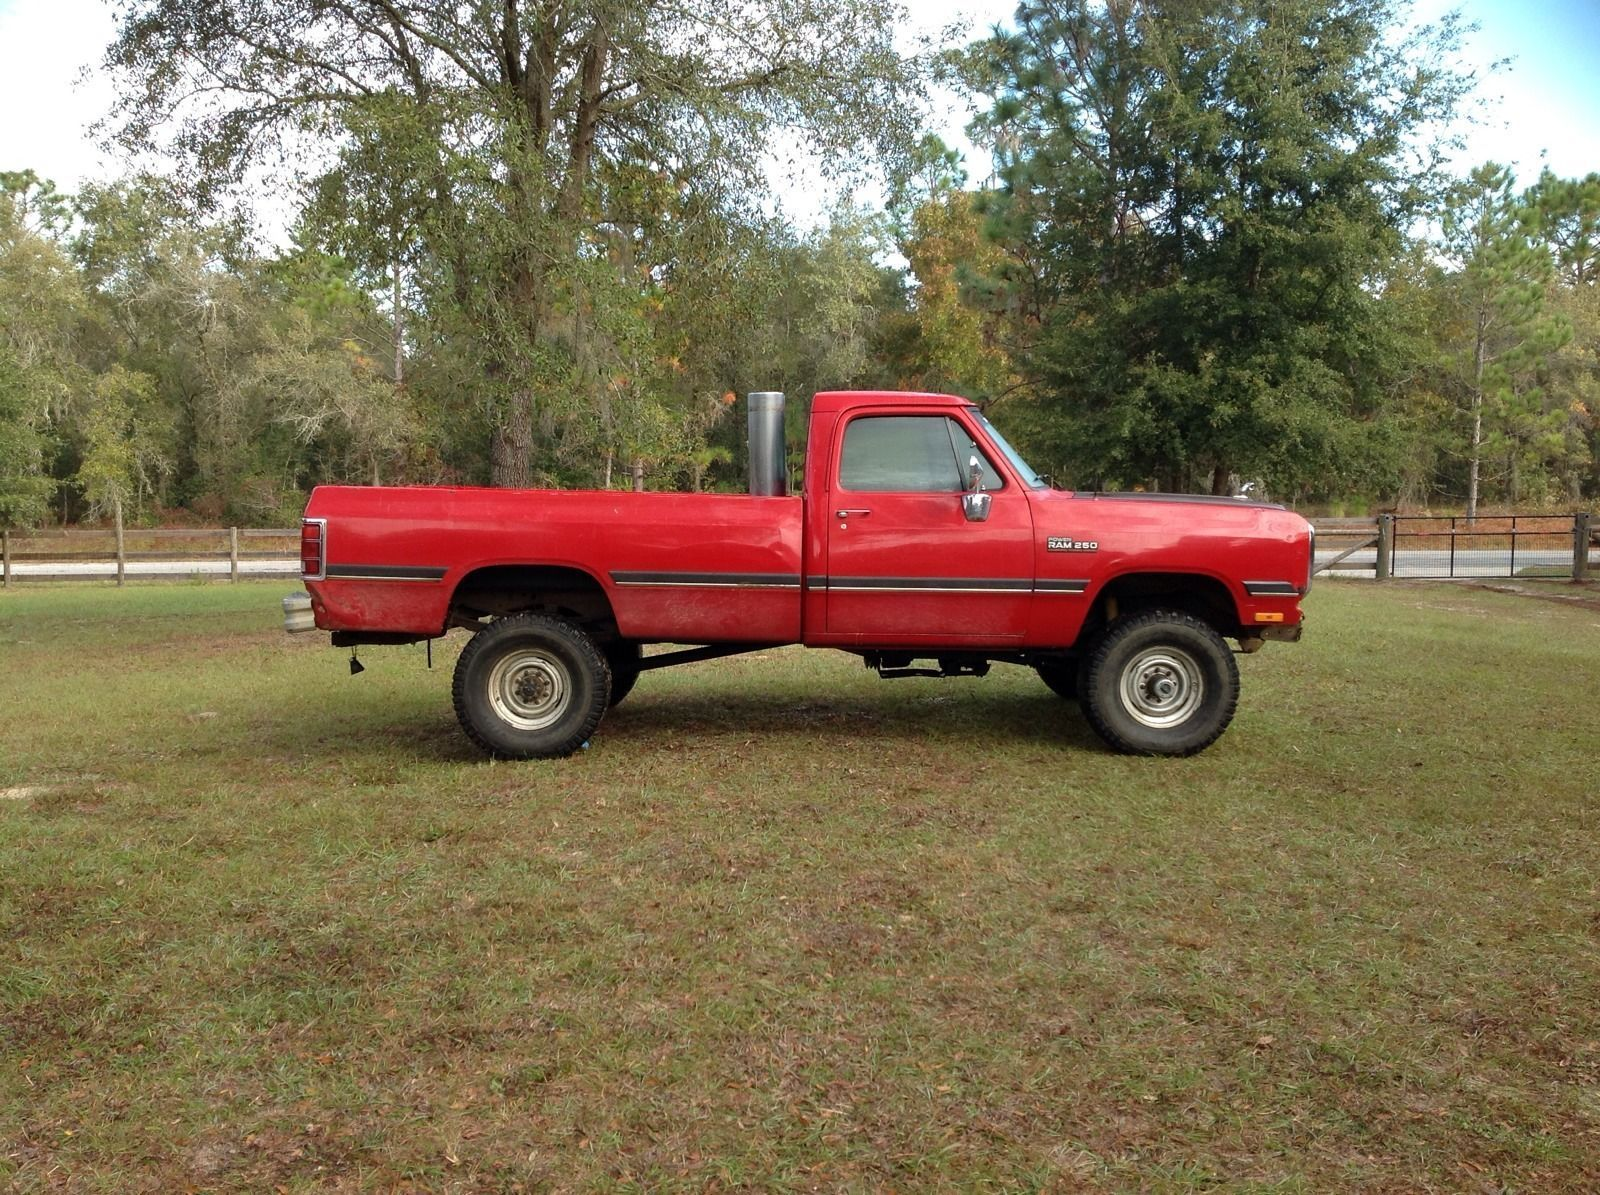 1993 dodge ram 12 valve 5 9 cummins turbo diesel 4x4 4wd 1st gen classic dodge ram 2500 1993. Black Bedroom Furniture Sets. Home Design Ideas